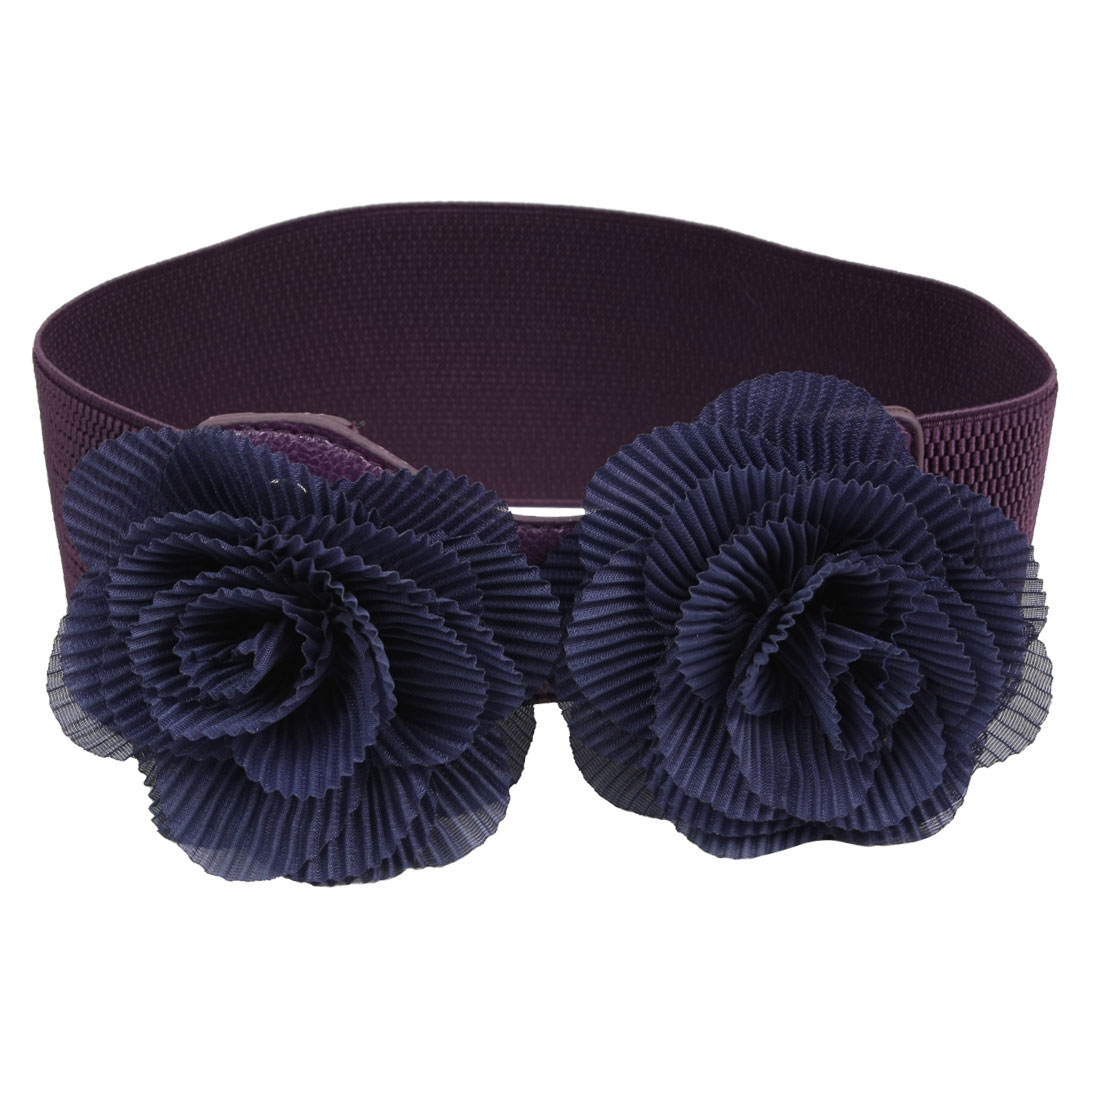 Double Chiffon Flowers Blue Purple Elastic Waist Belt Band Cinch for Lady